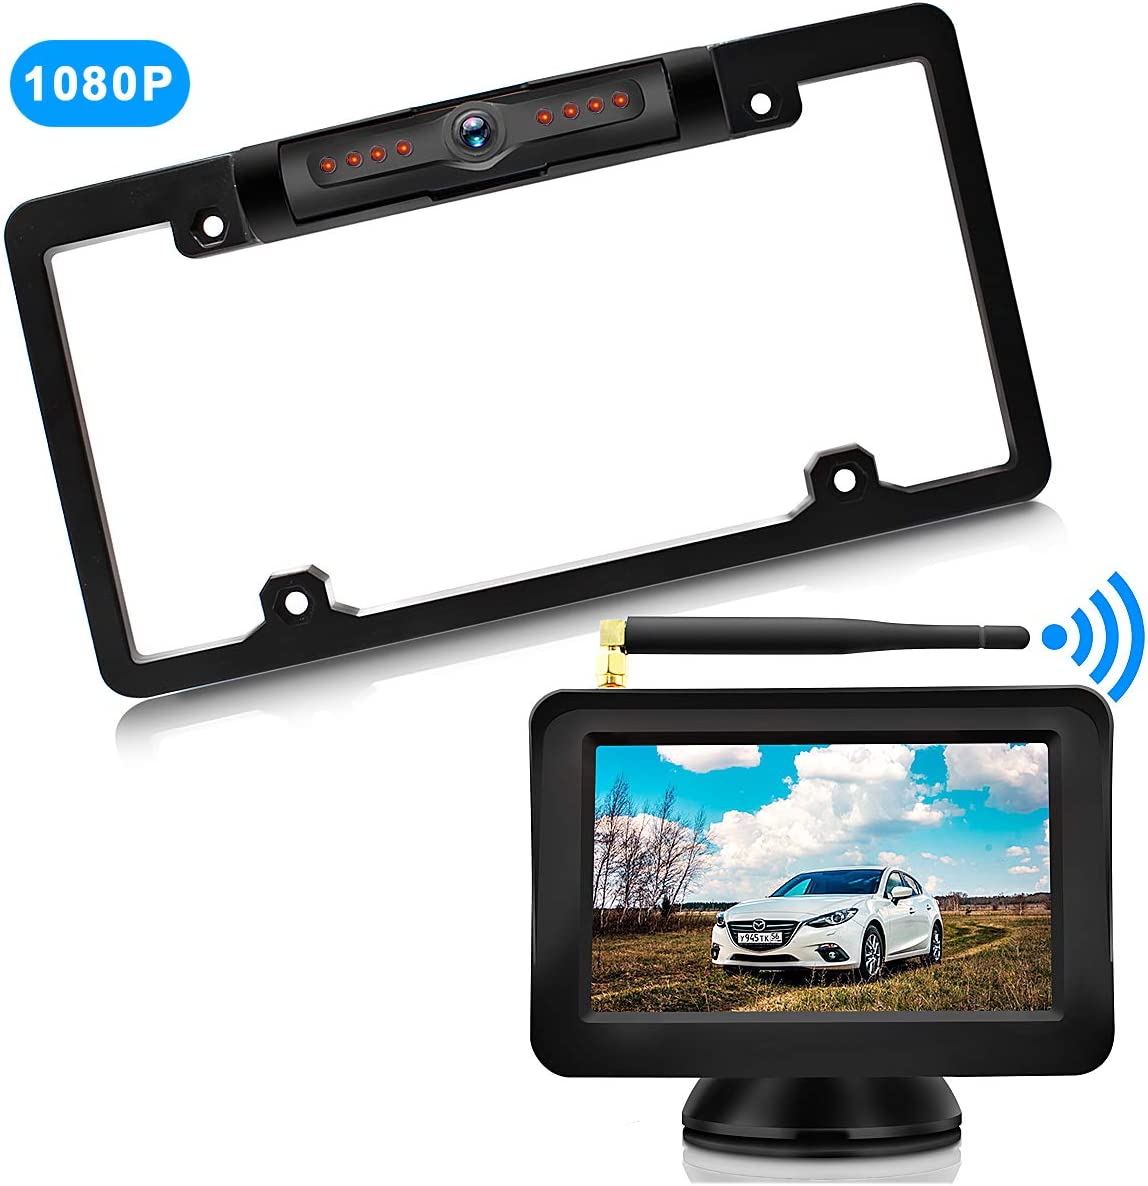 URVOLAX-Wireless Backup Camera License Plate-Monitor Kit 5 inch 1080P HD Universal Reverse-Rear View Camera IP69K Waterproof 170 Wide View Angle,Digital Stable Signal,Easy Installation Fit All Cars